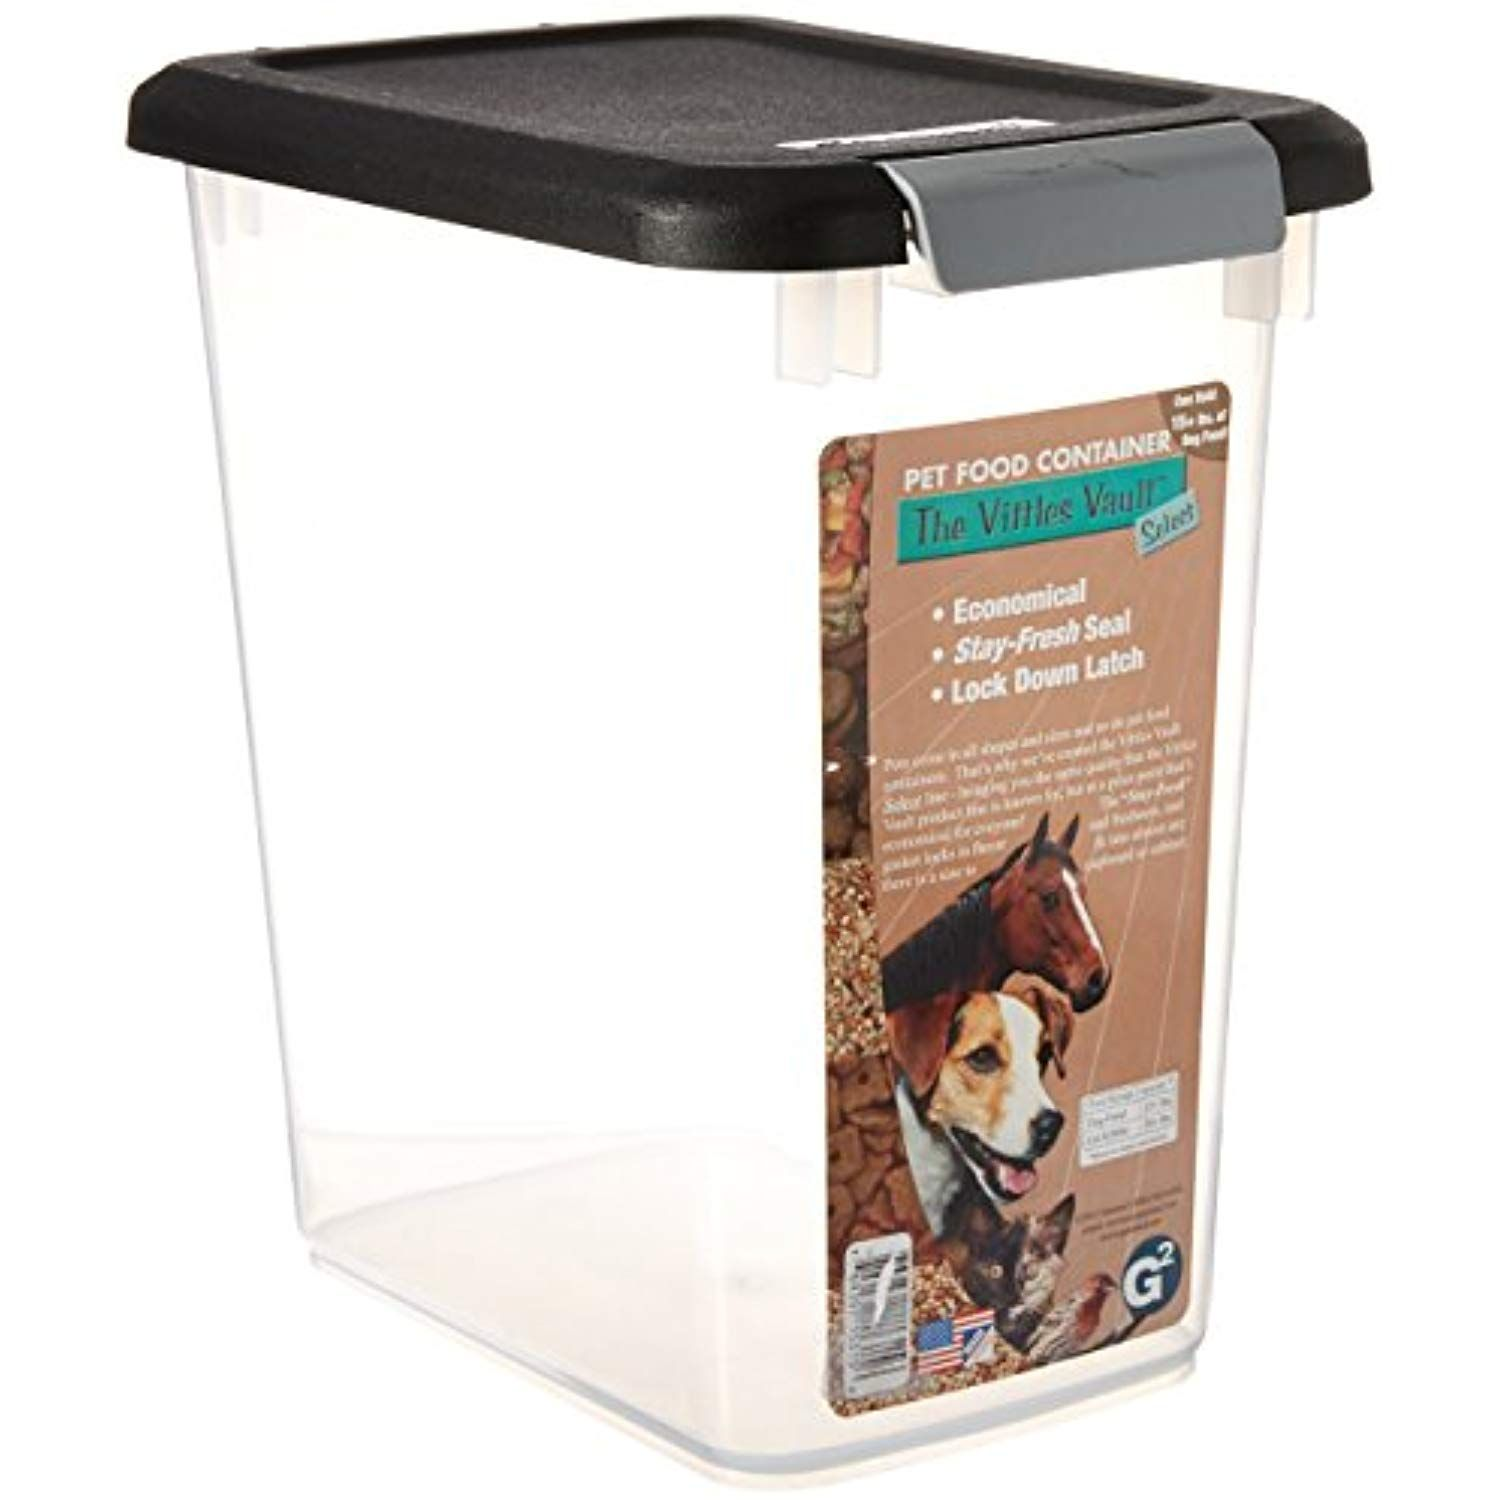 Gamma 693018 Vittles Vault Select Pet Food Containers 15 Pound